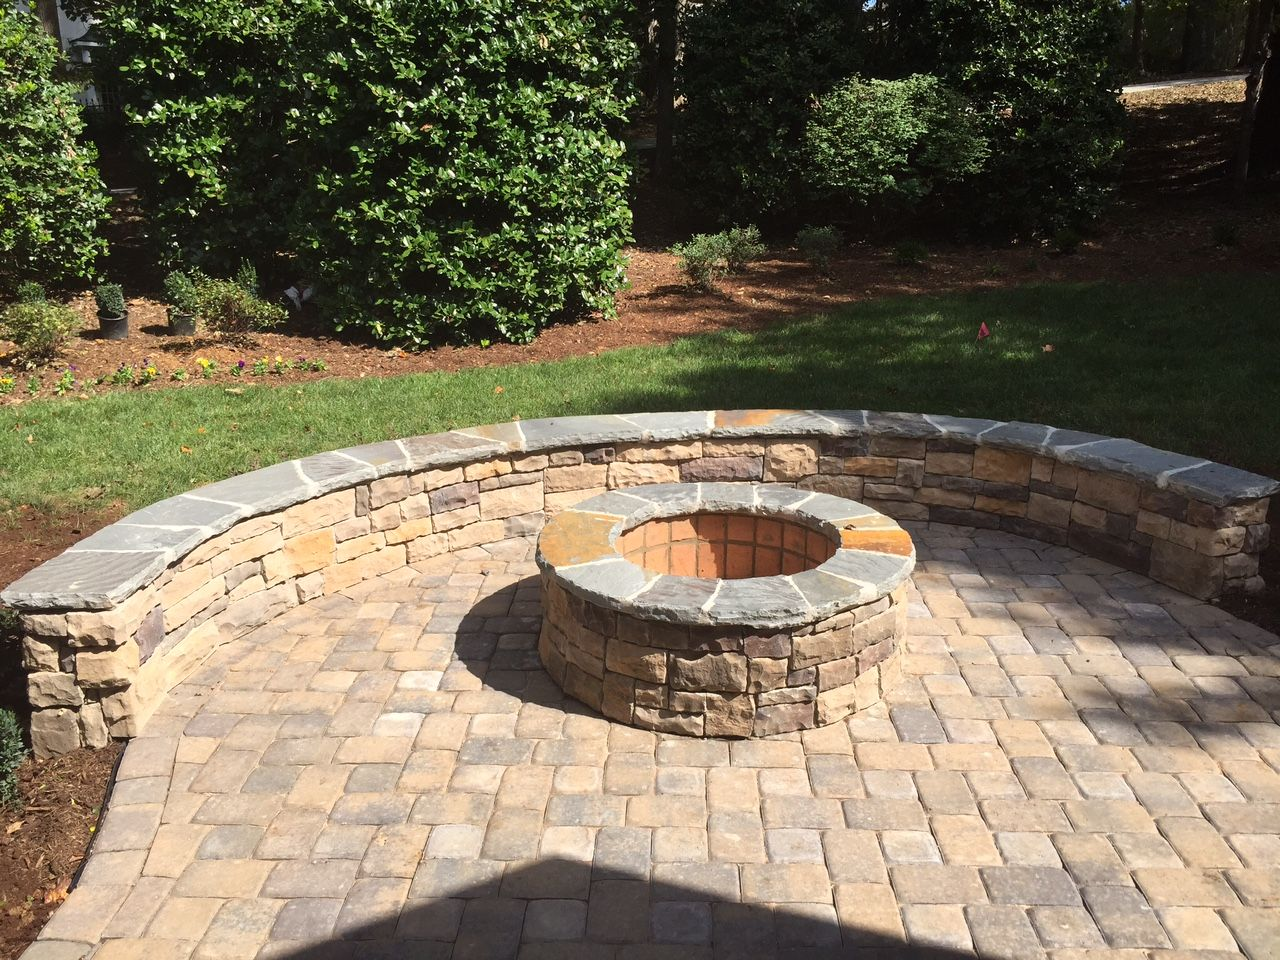 Durham Fire Pit on Belgard Paver Patio - Durham Fire Pit On Belgard Paver Patio Raleigh-Durham Outdoor